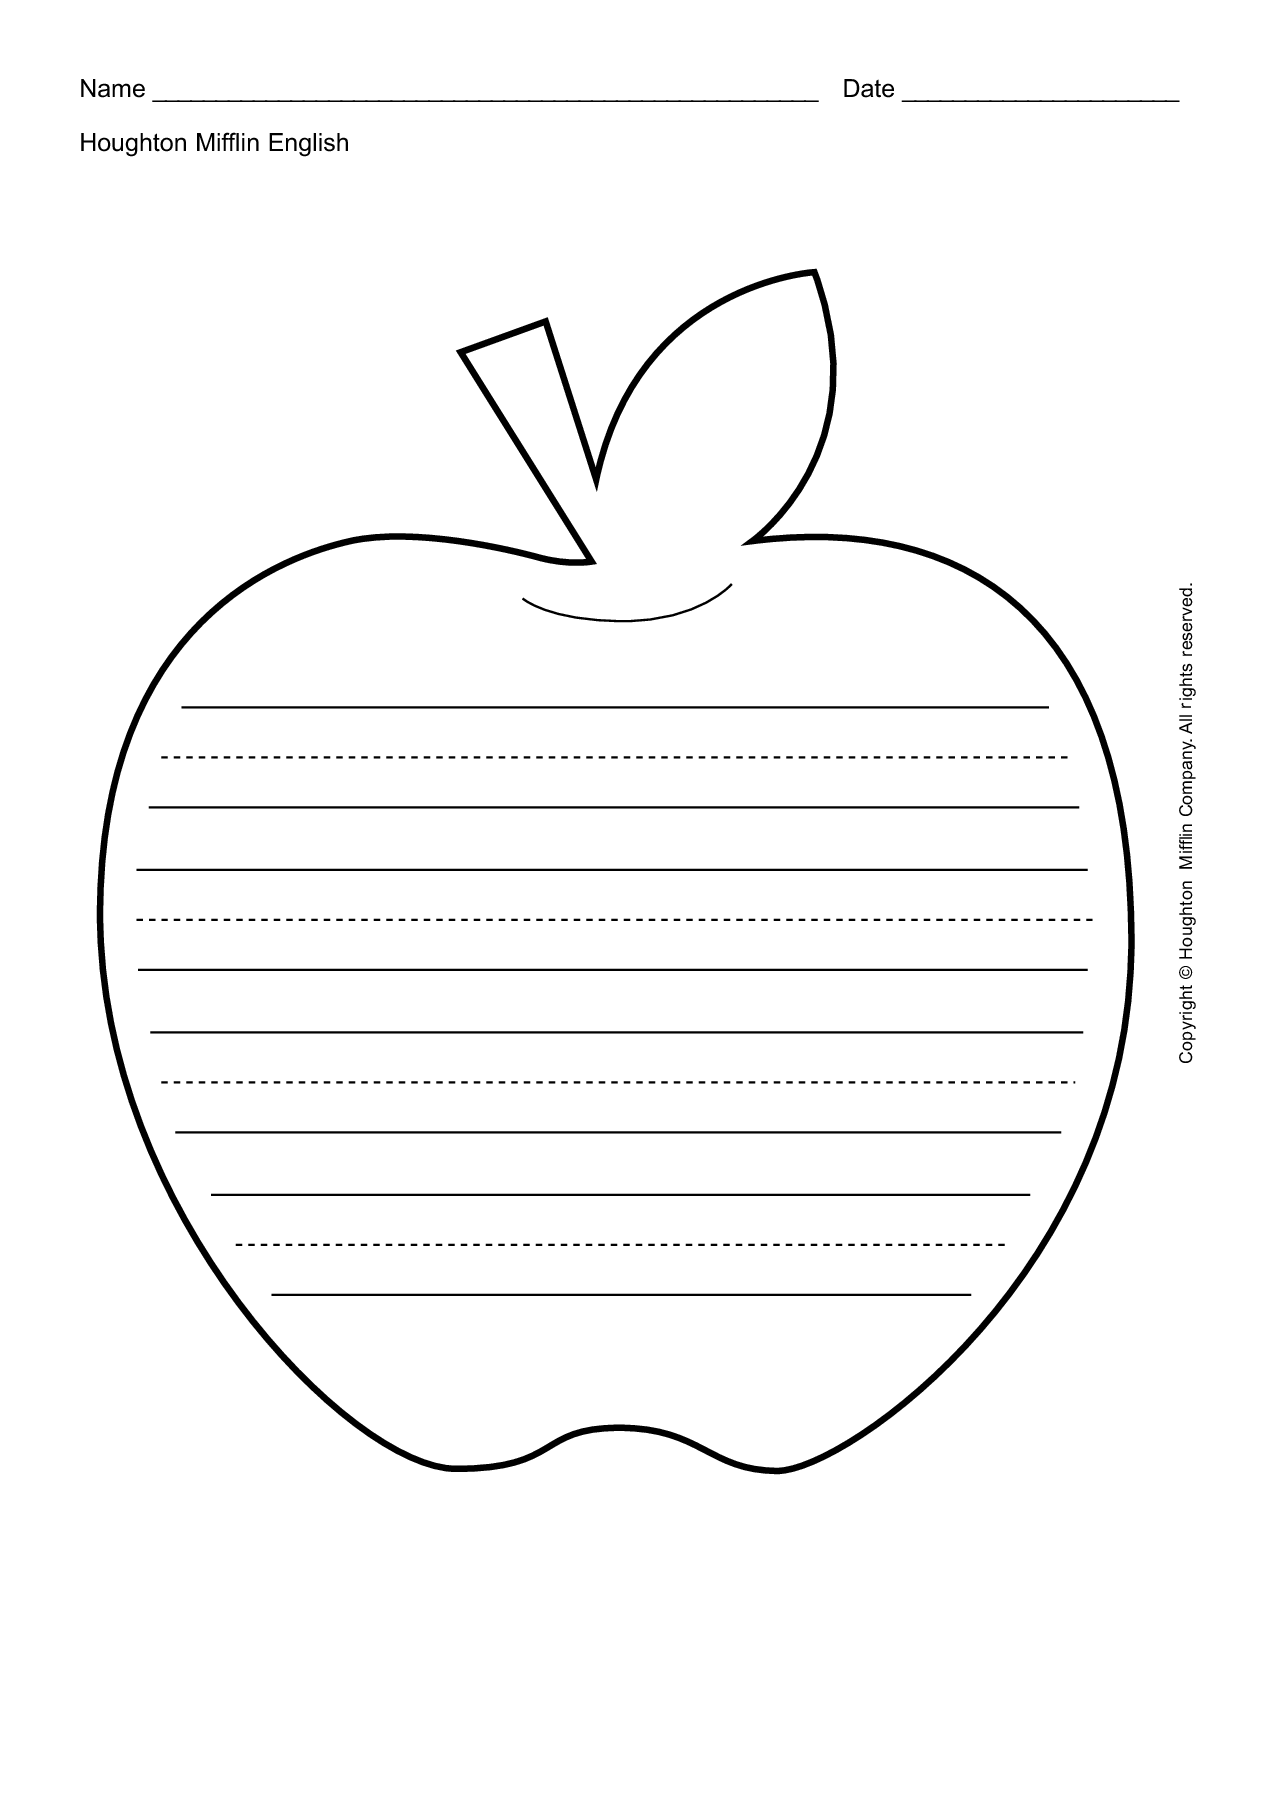 photograph relating to Printable Apple Template titled Apple Leaf Template Printable Apples Instructor worksheets